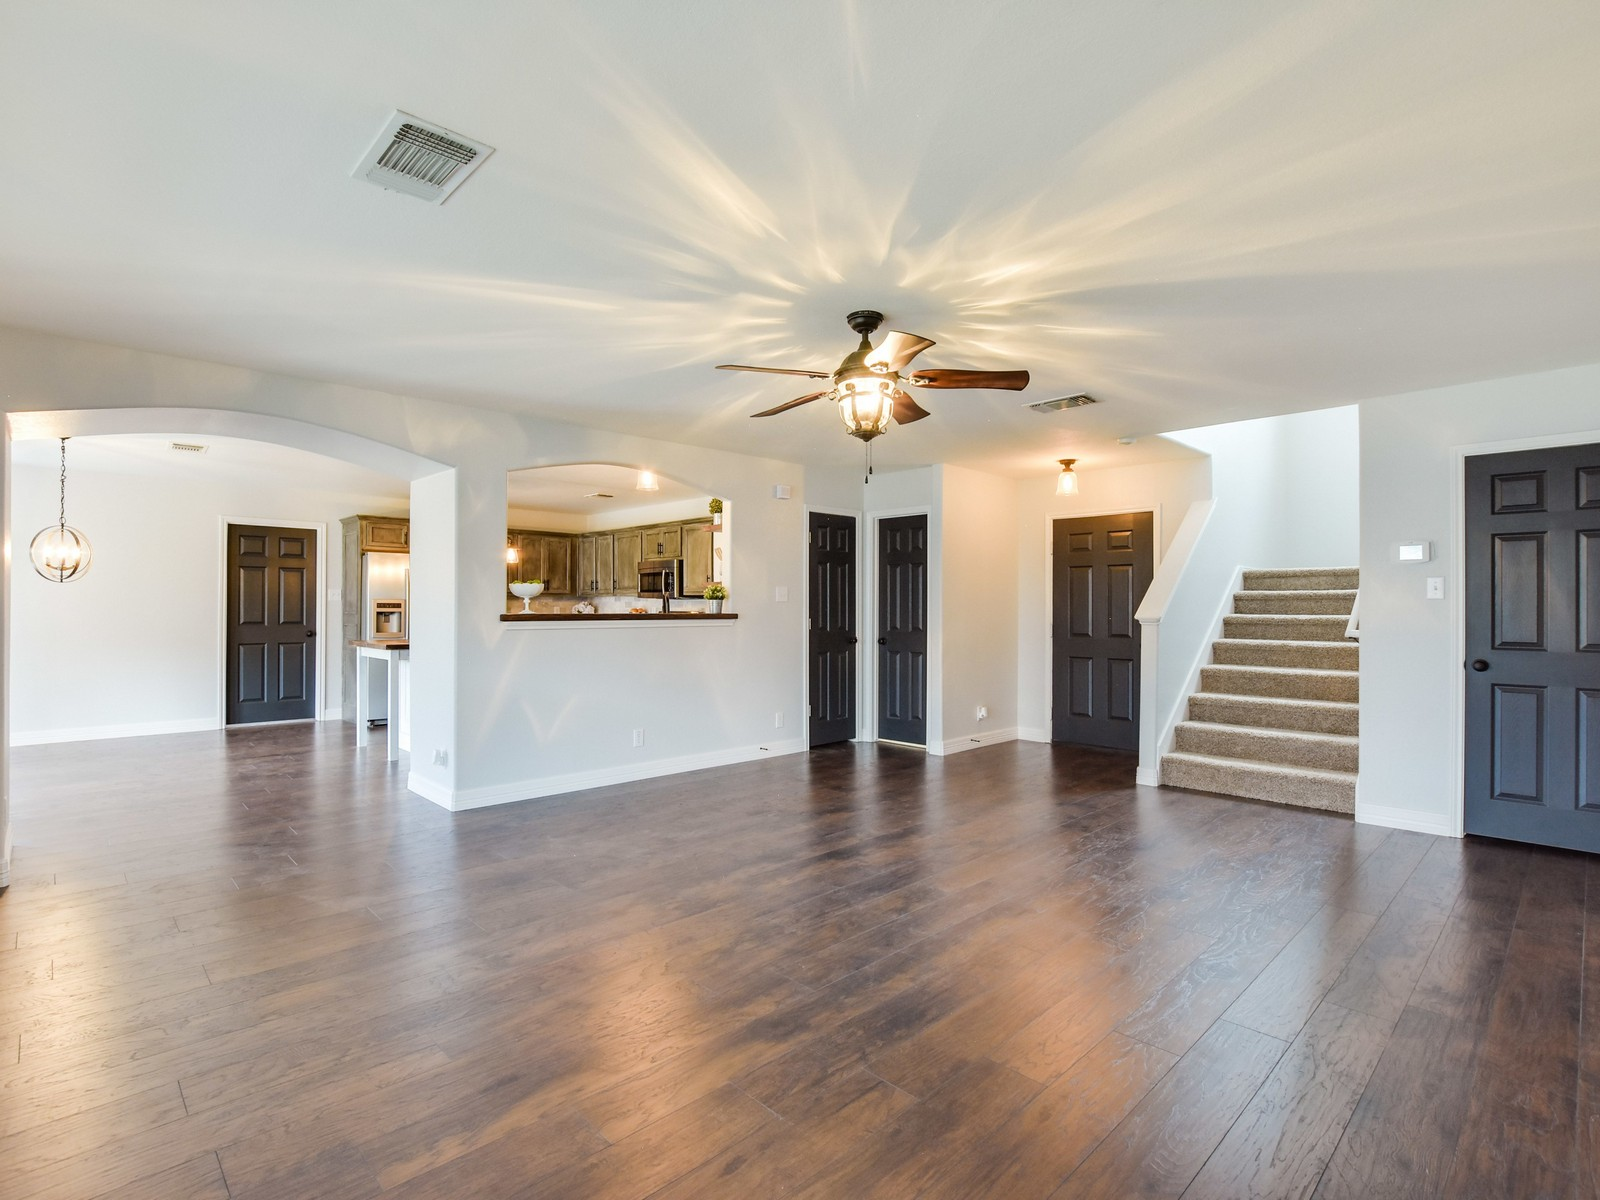 Additional photo for property listing at Amazing Upgrades Throughout 8446 Dusty Ridge Converse, Texas 78109 United States